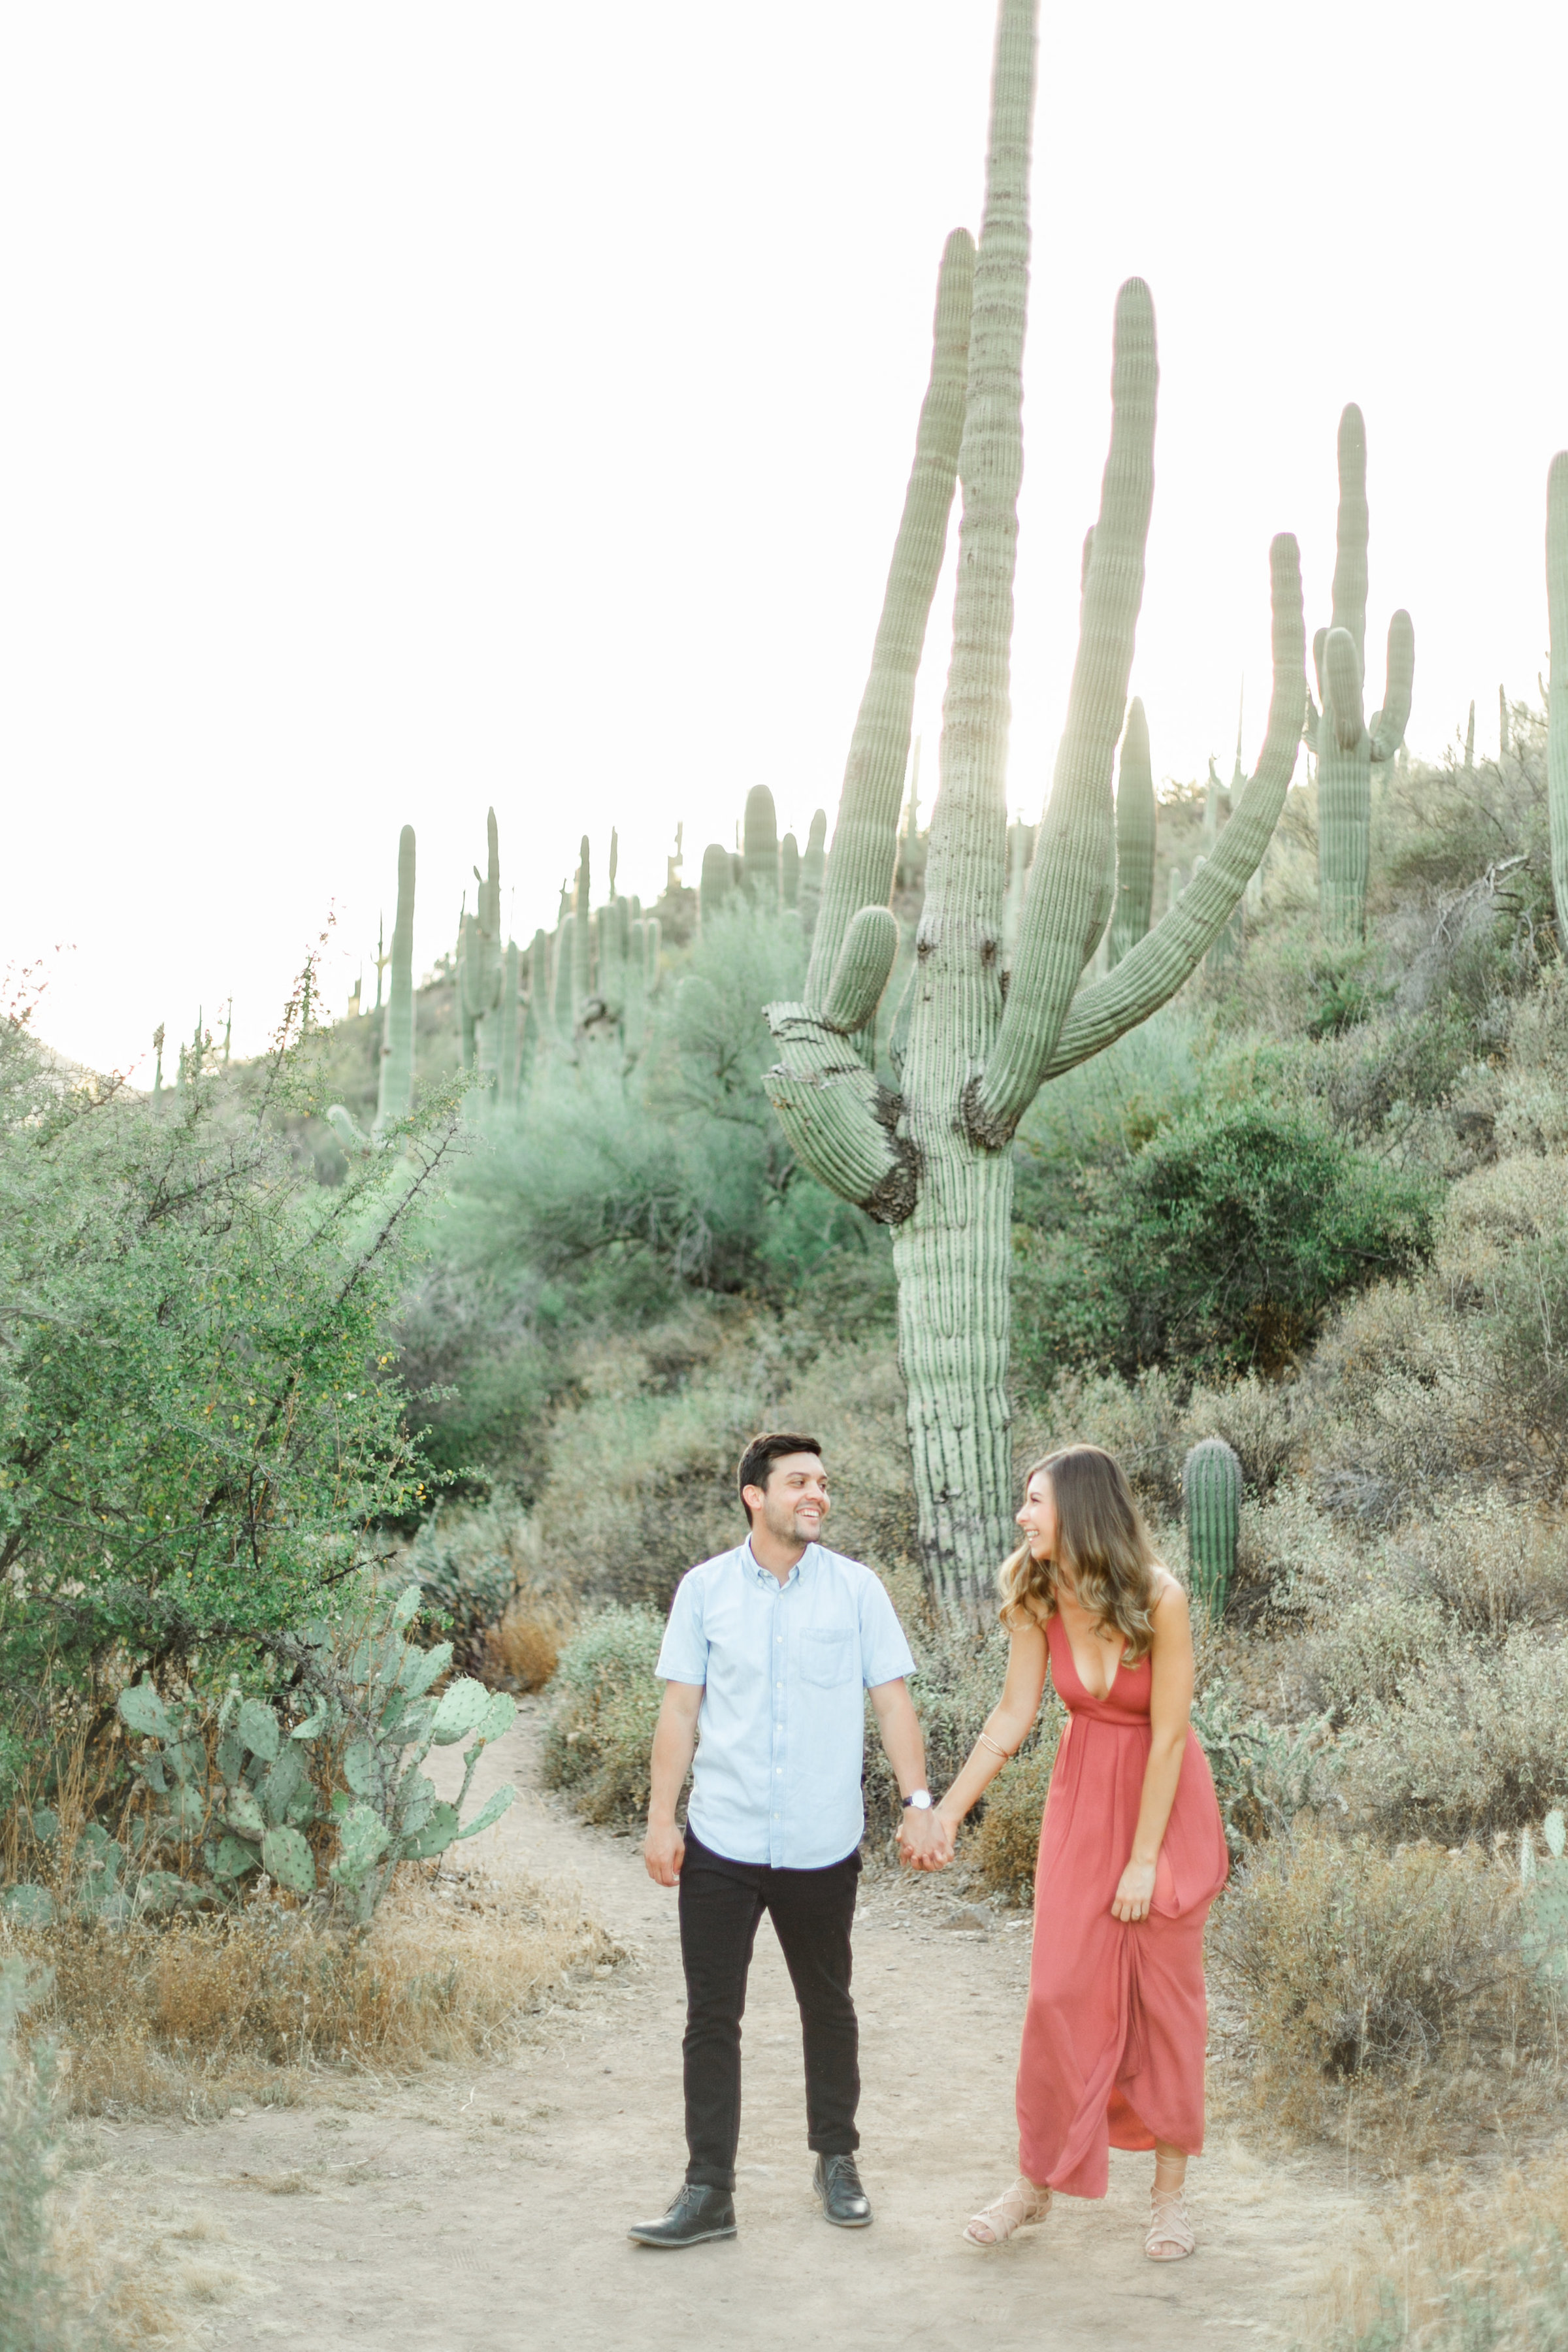 Karlie Colleen Photography - Arizona Desert Engagement - Brynne & Josh -127